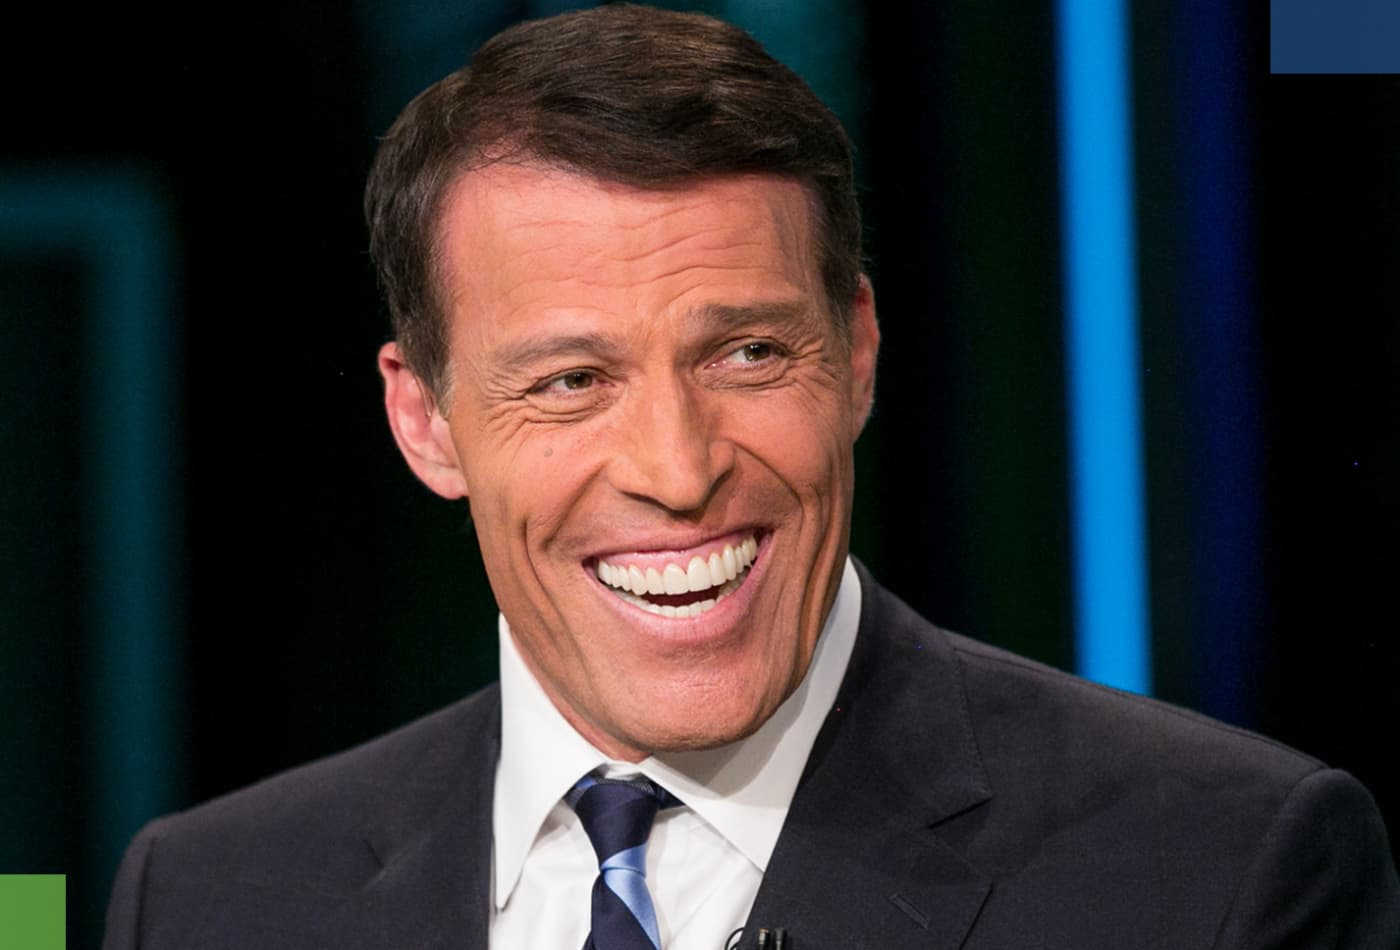 Tony Robbins' top book recommendations